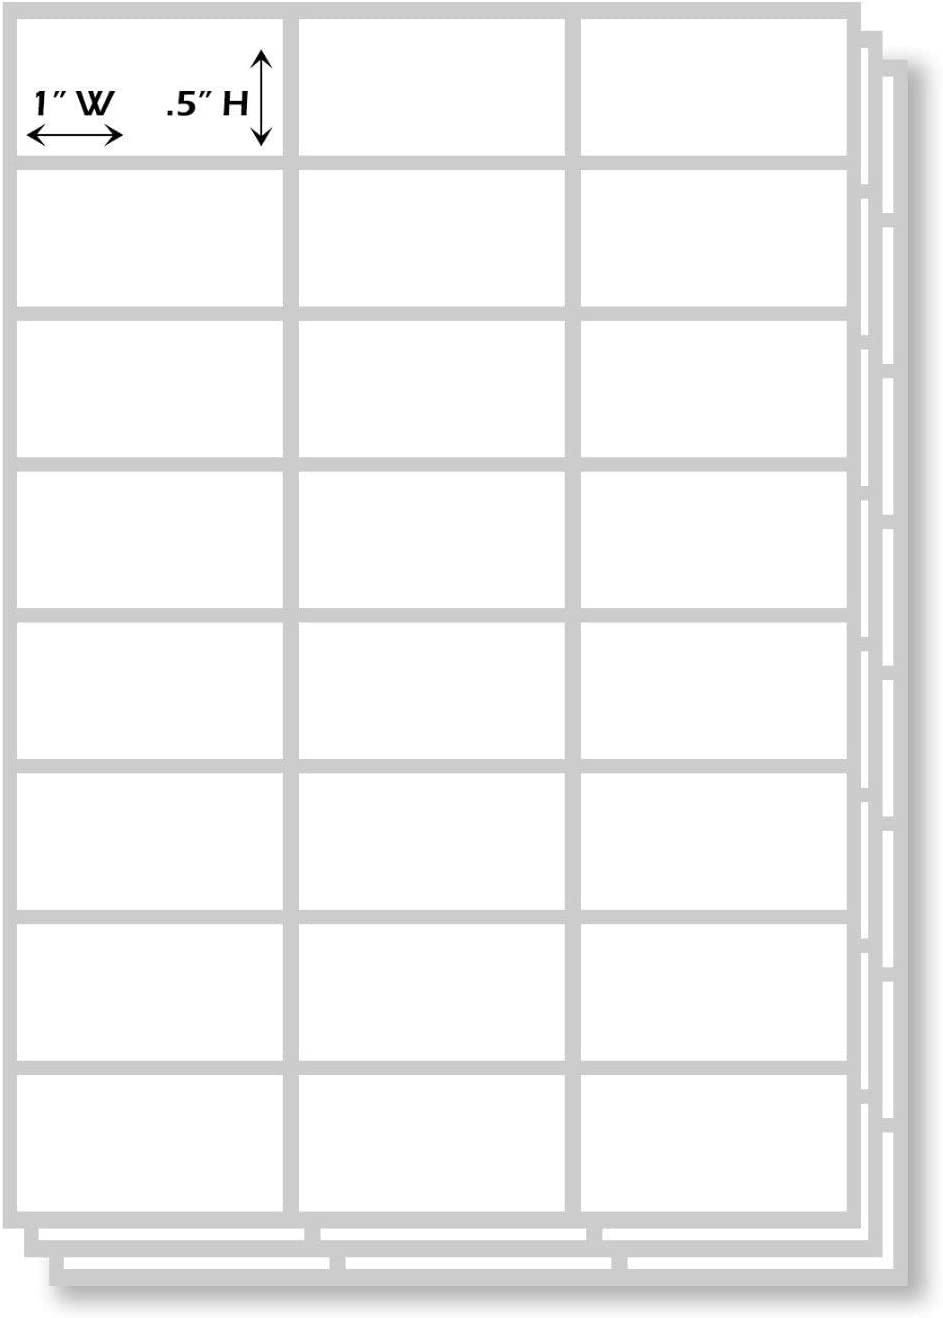 1 x .5 Stick On Rectangle Tag 1008 Pack All Purpose Plain White Rectangular Self Adhesive Labels